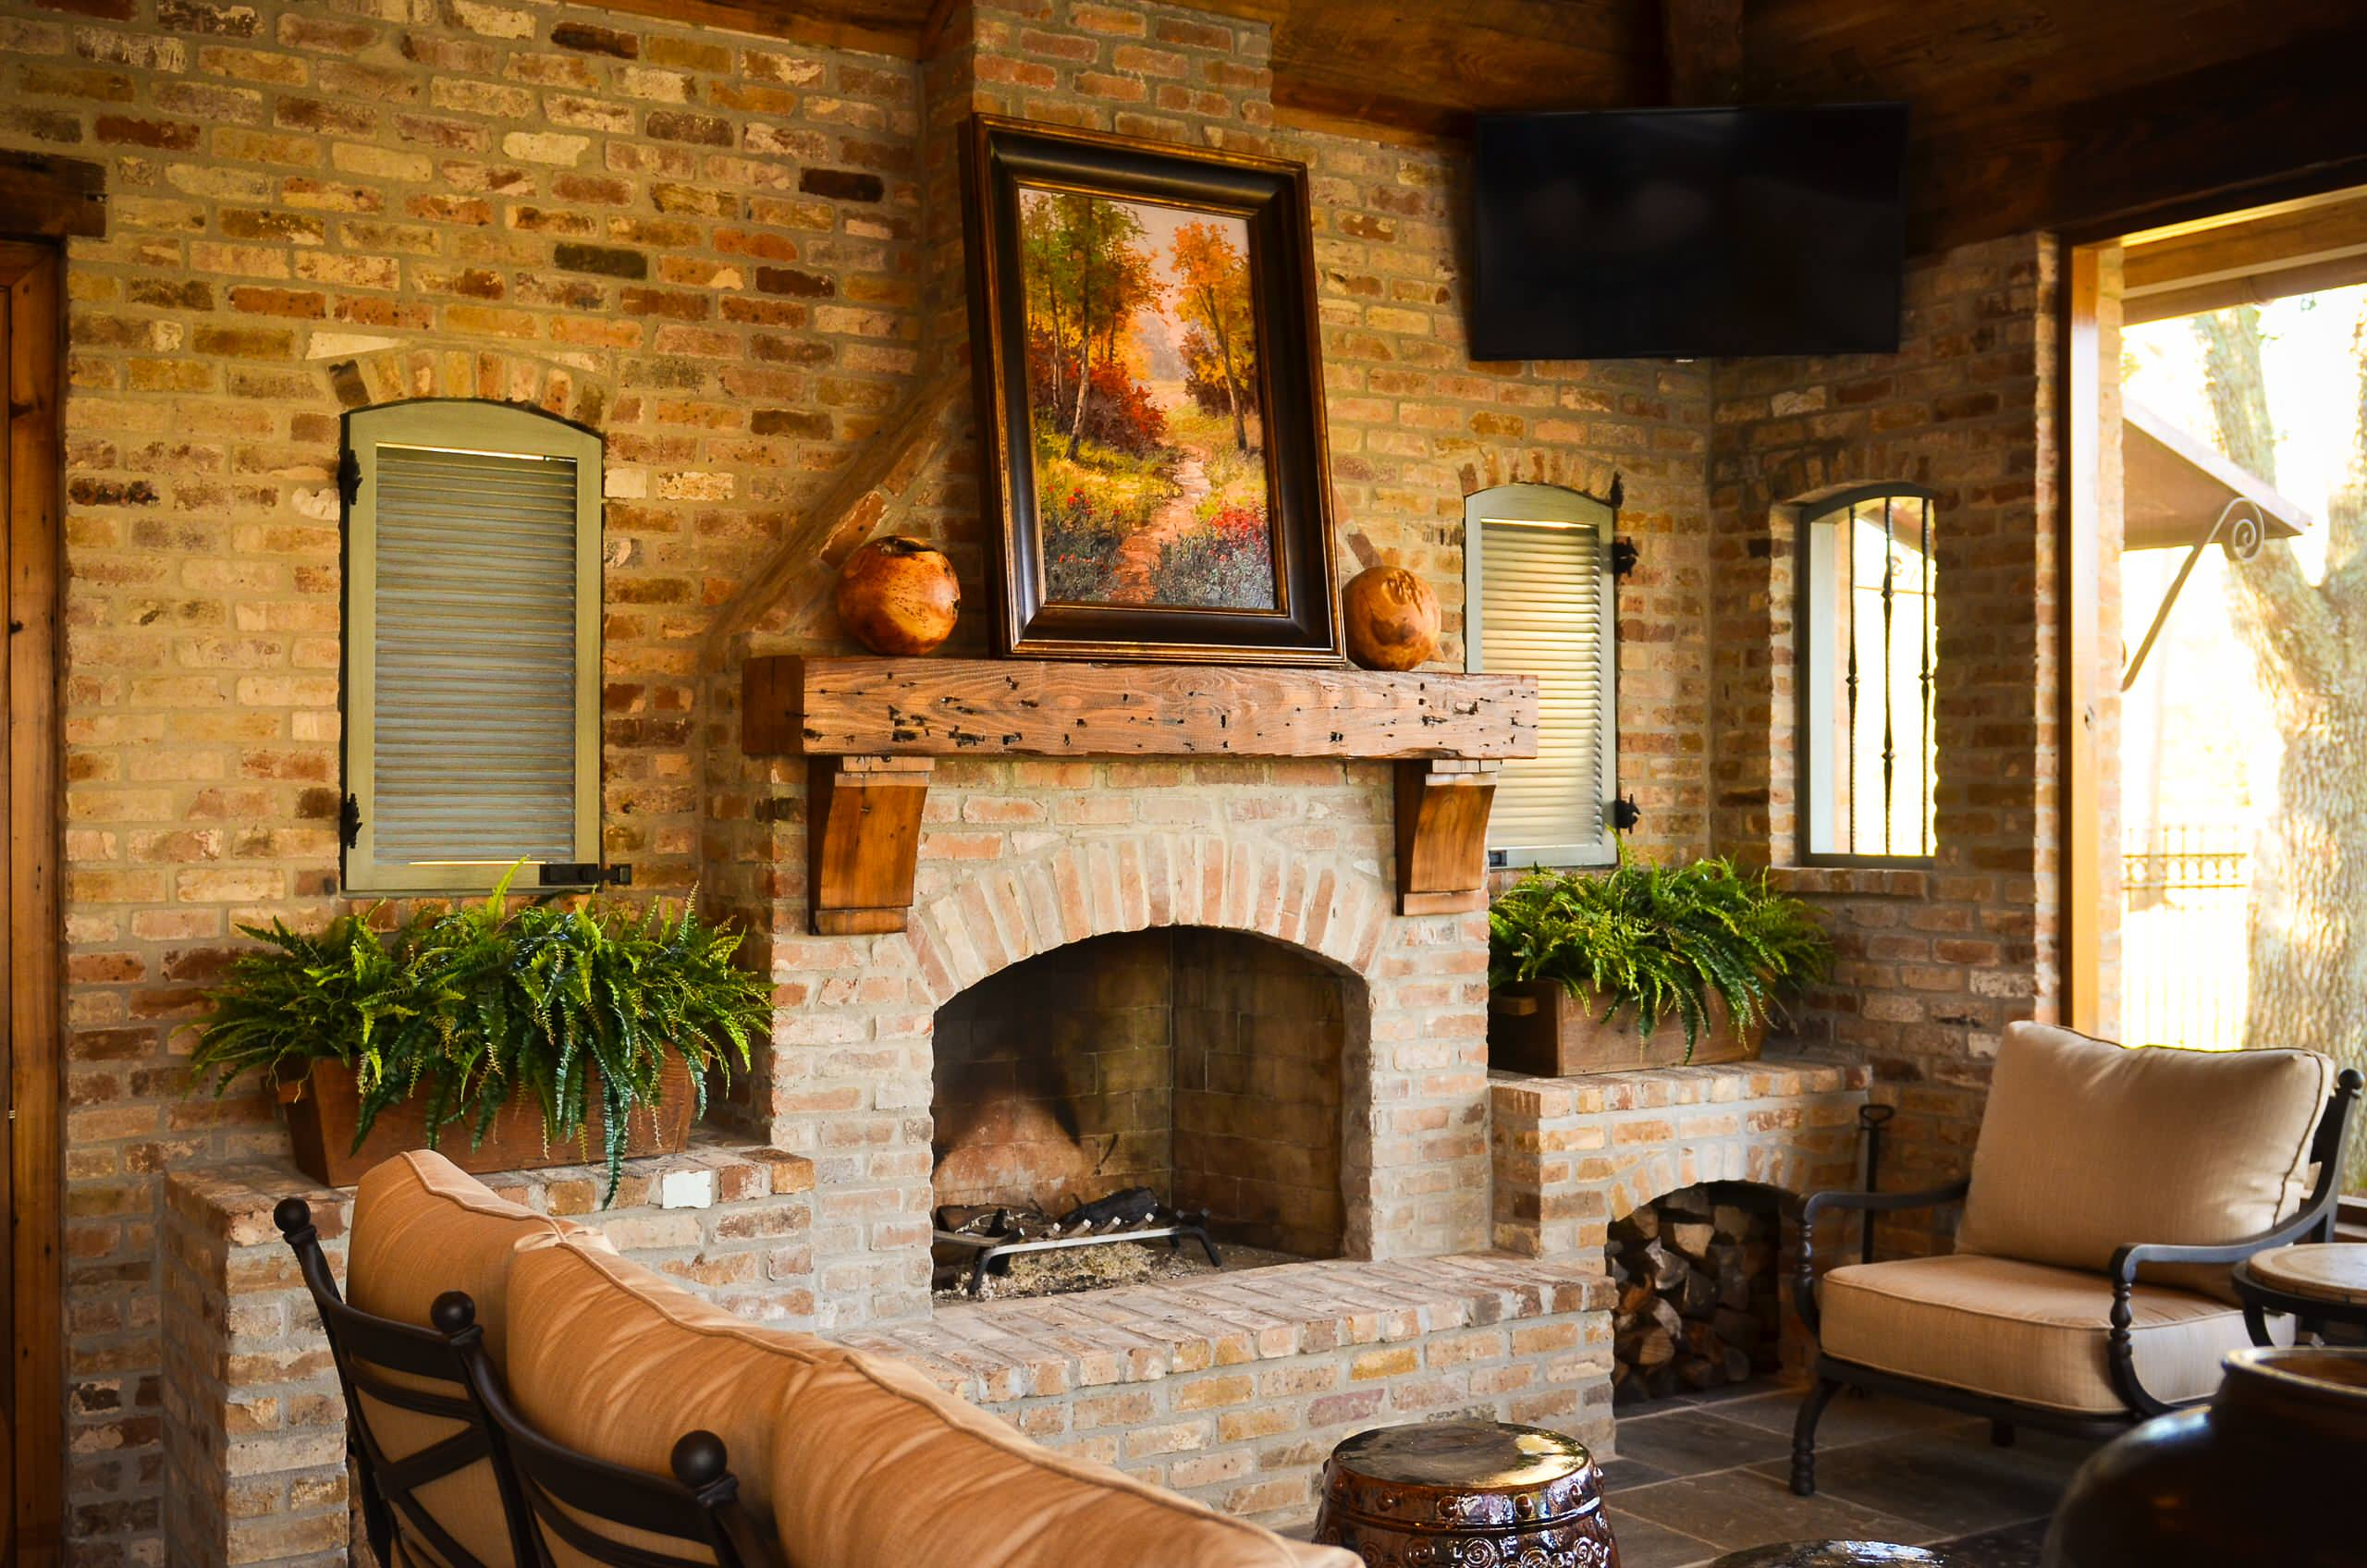 Rustic Living Room Plus Brick Fireplace And Fireplace Mantles With Outdoor Cushions For Outdoor Furniture Also Shutters And Brick Wall Plus Stool Garden With Wall Decor And Houseplant